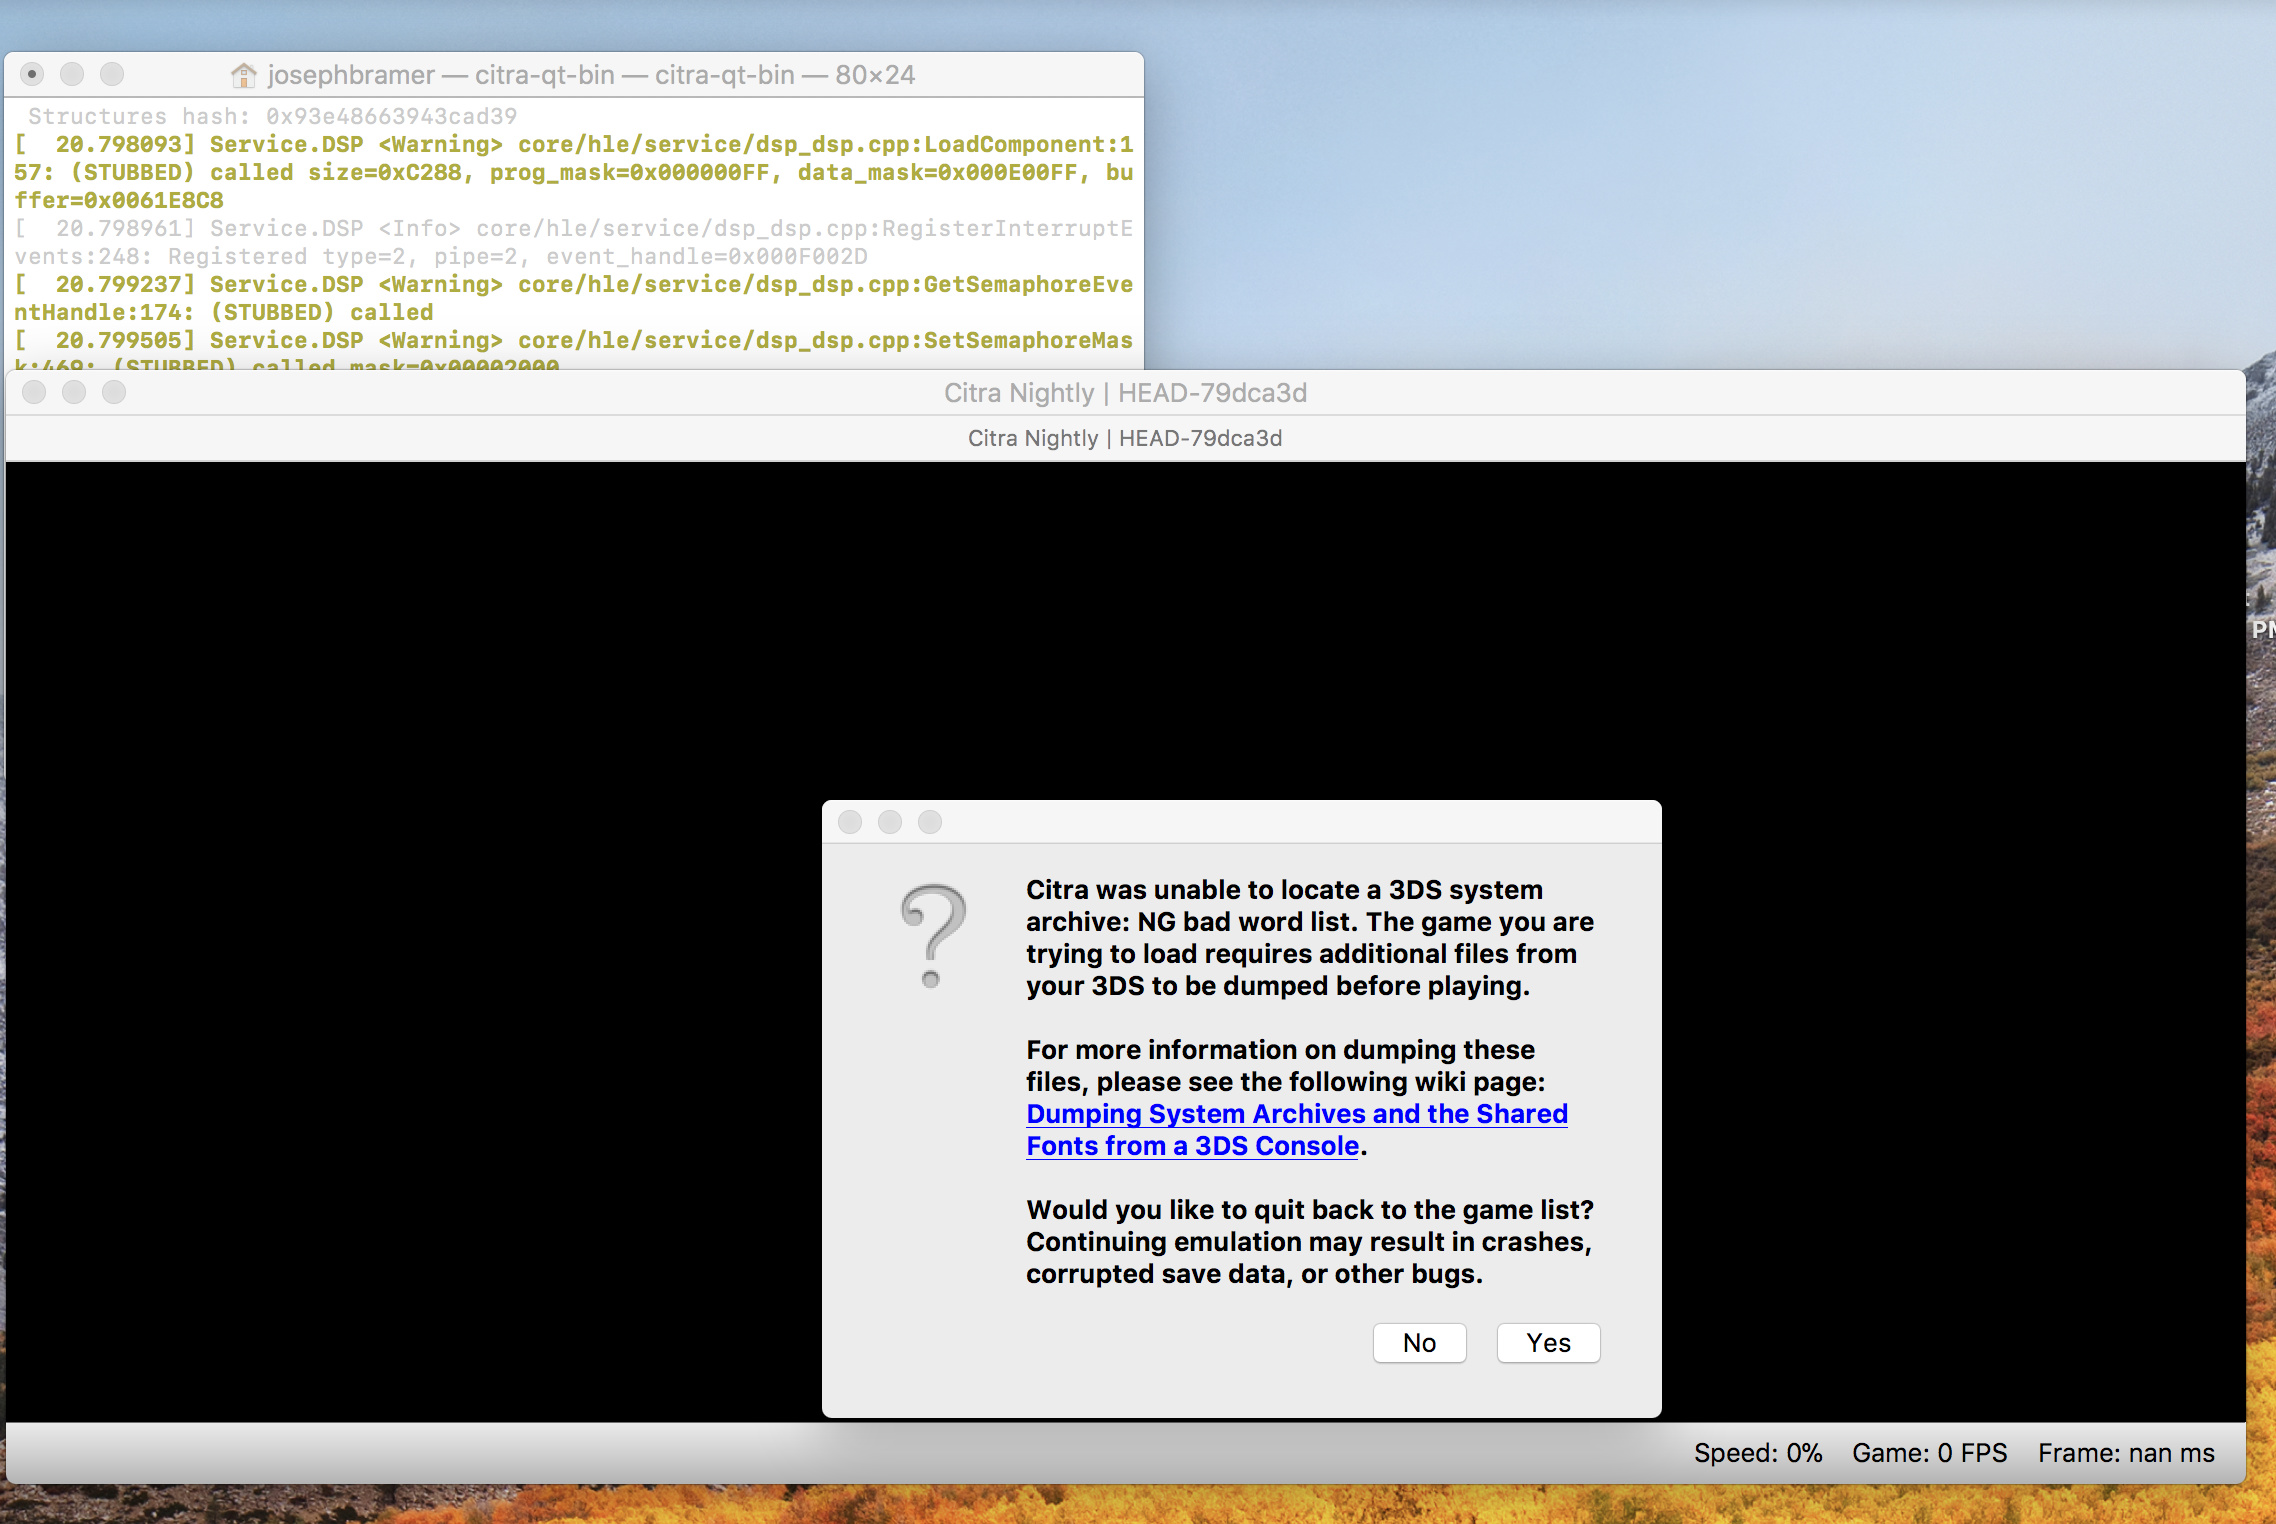 How do I 3ds file dump on my MacBook Pro? - Citra Support